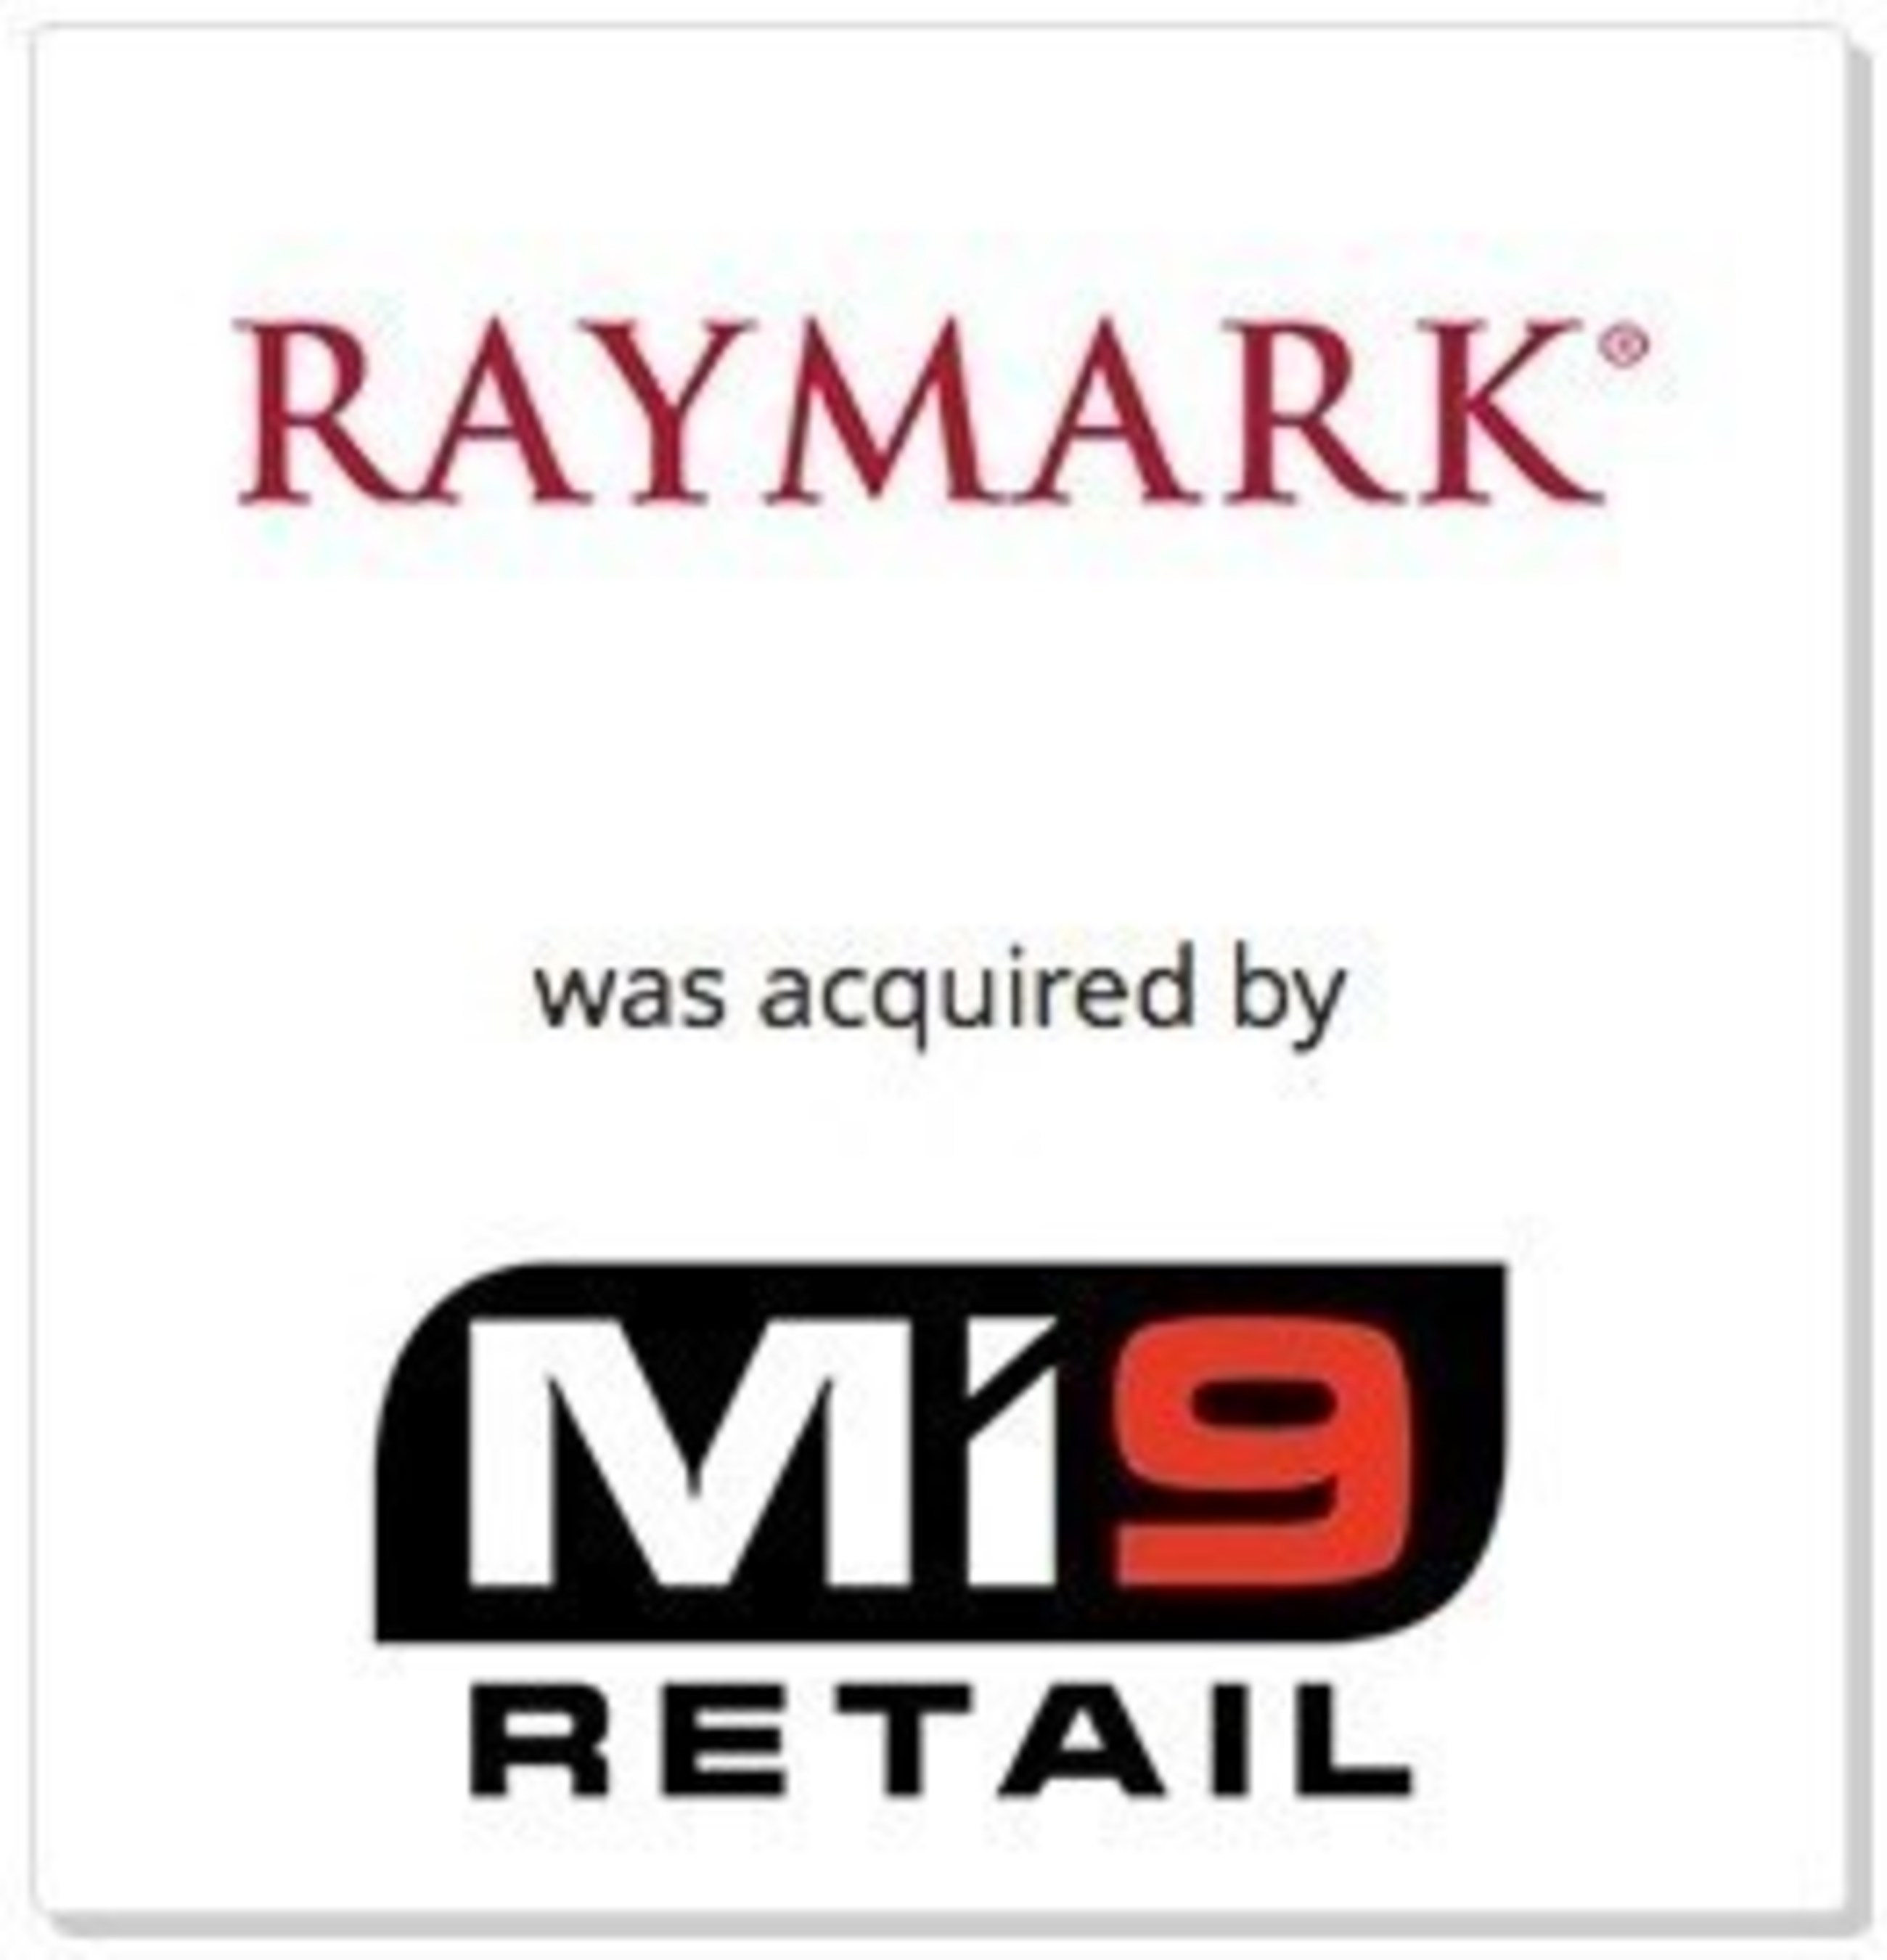 Tequity Advises Raymark on Acquisition by Mi9